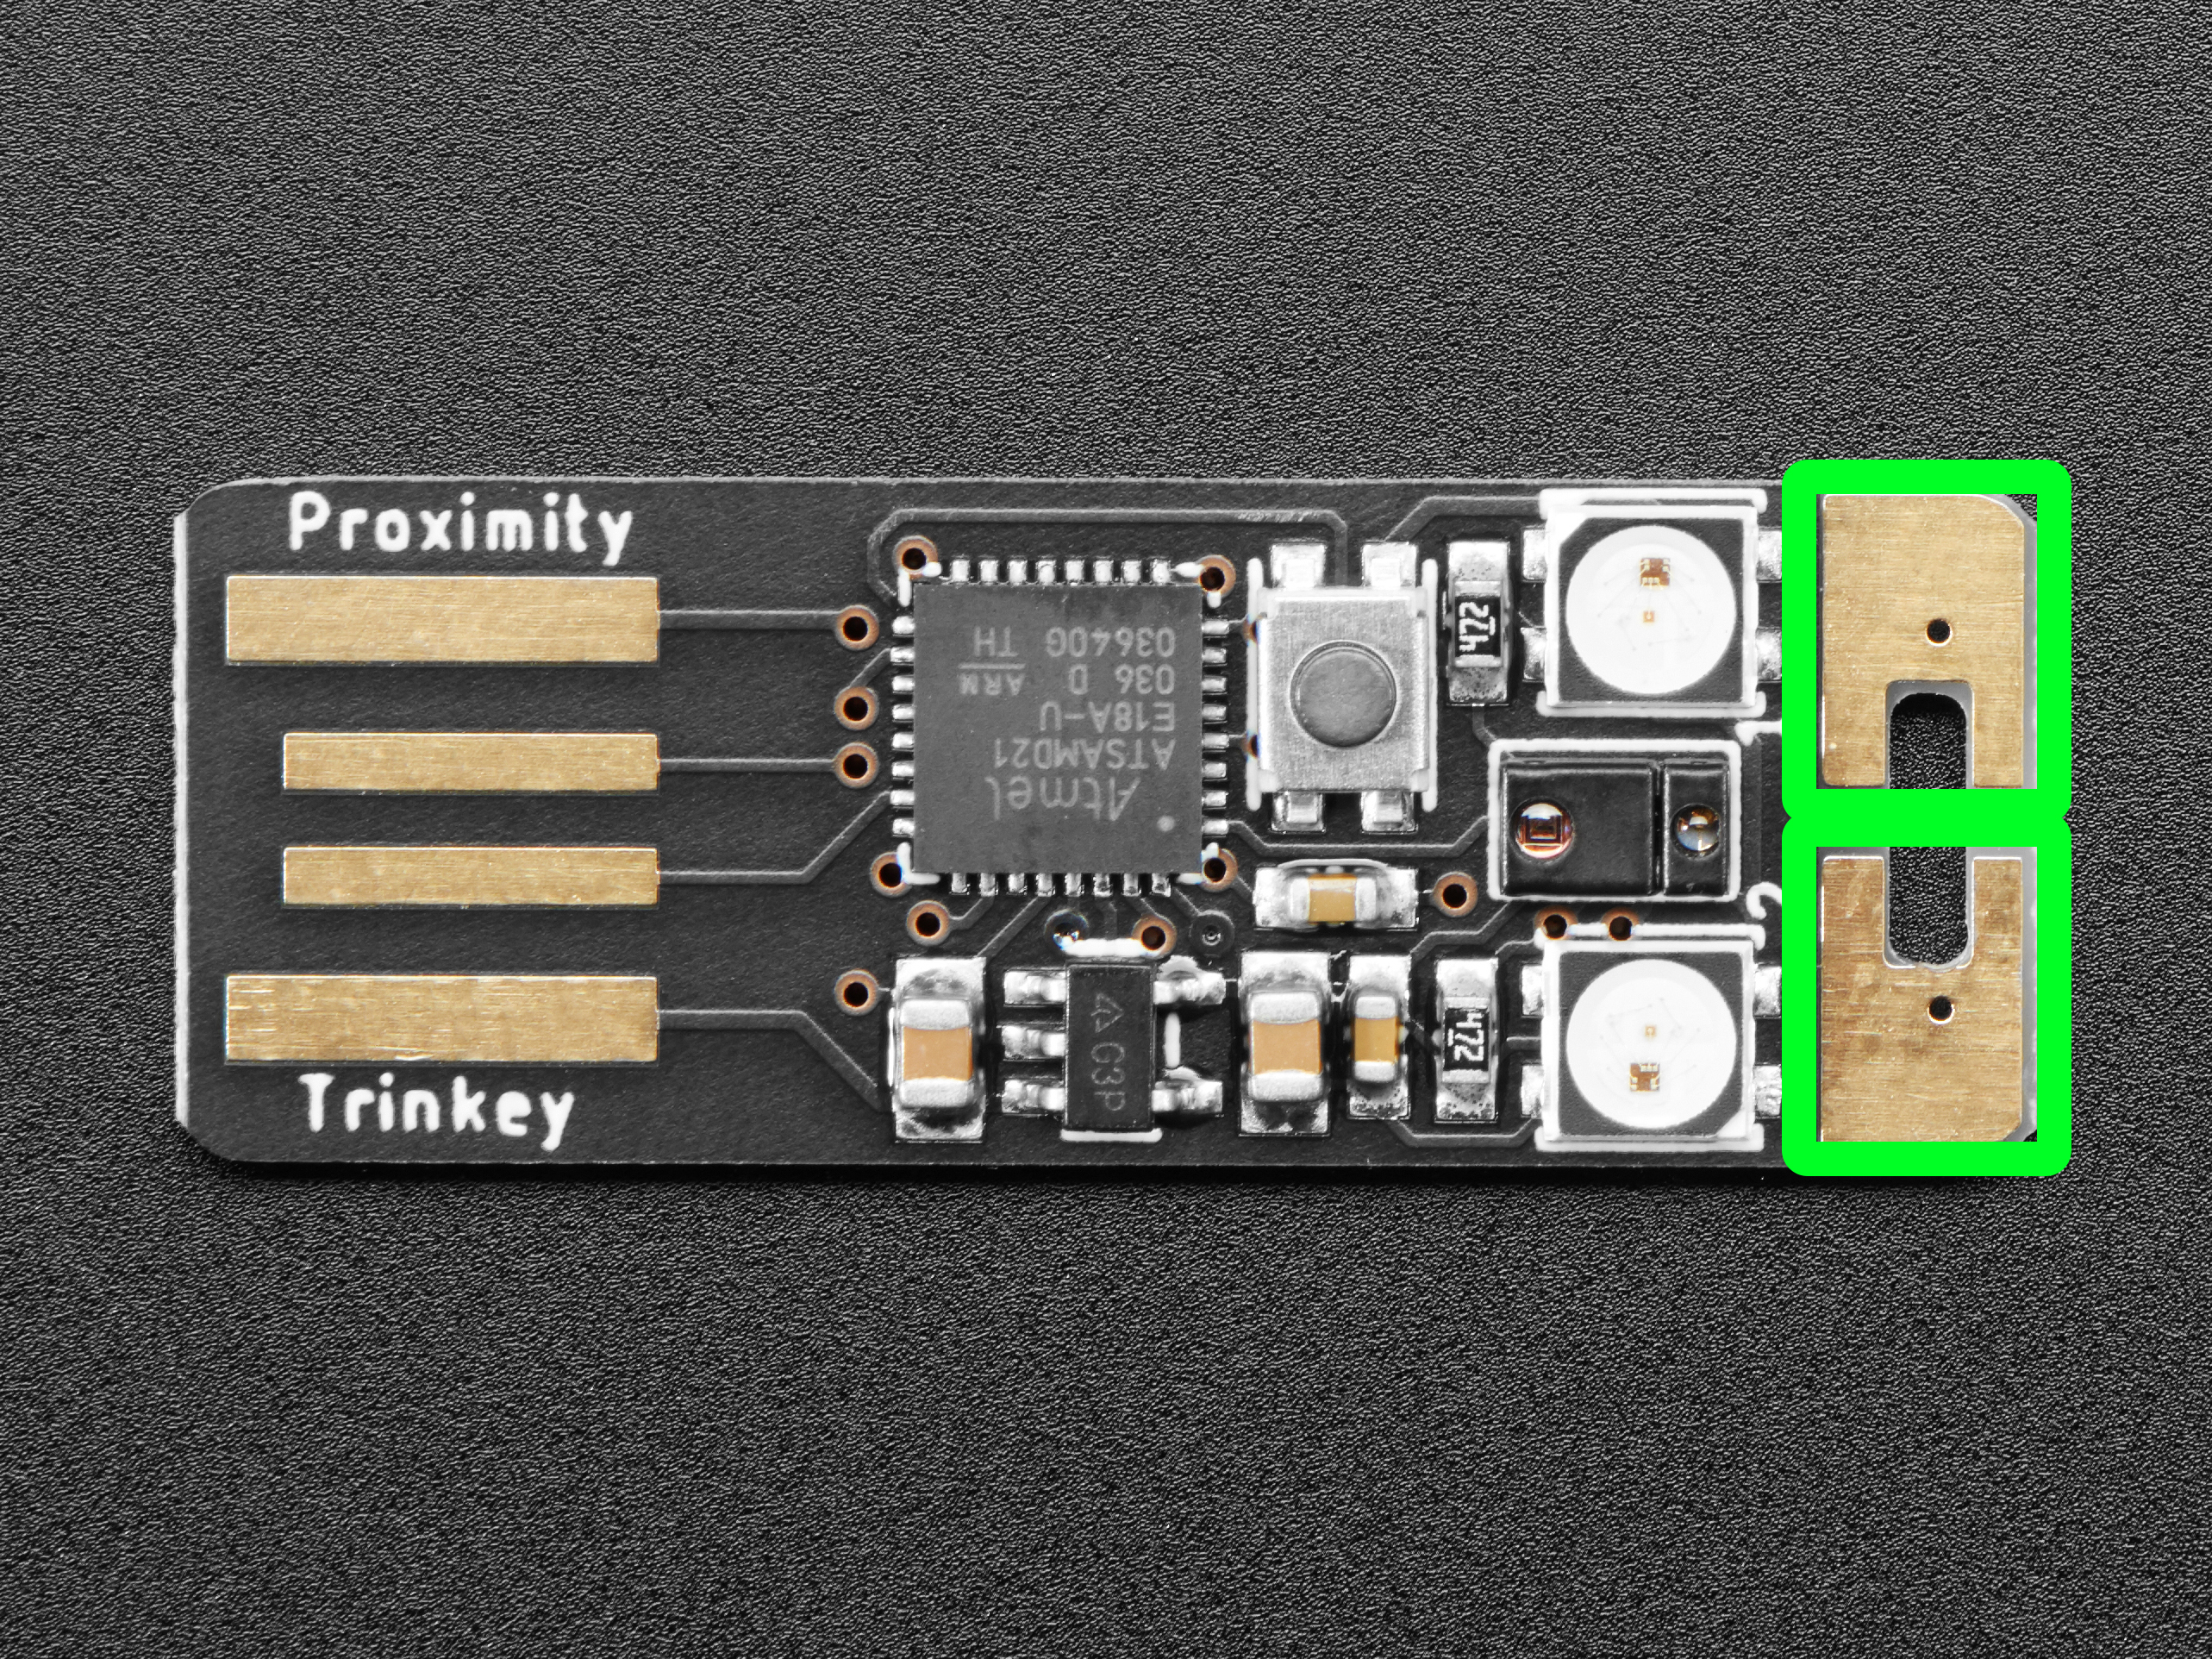 adafruit_products_ProxT_cap_touch_1_and_2.jpg